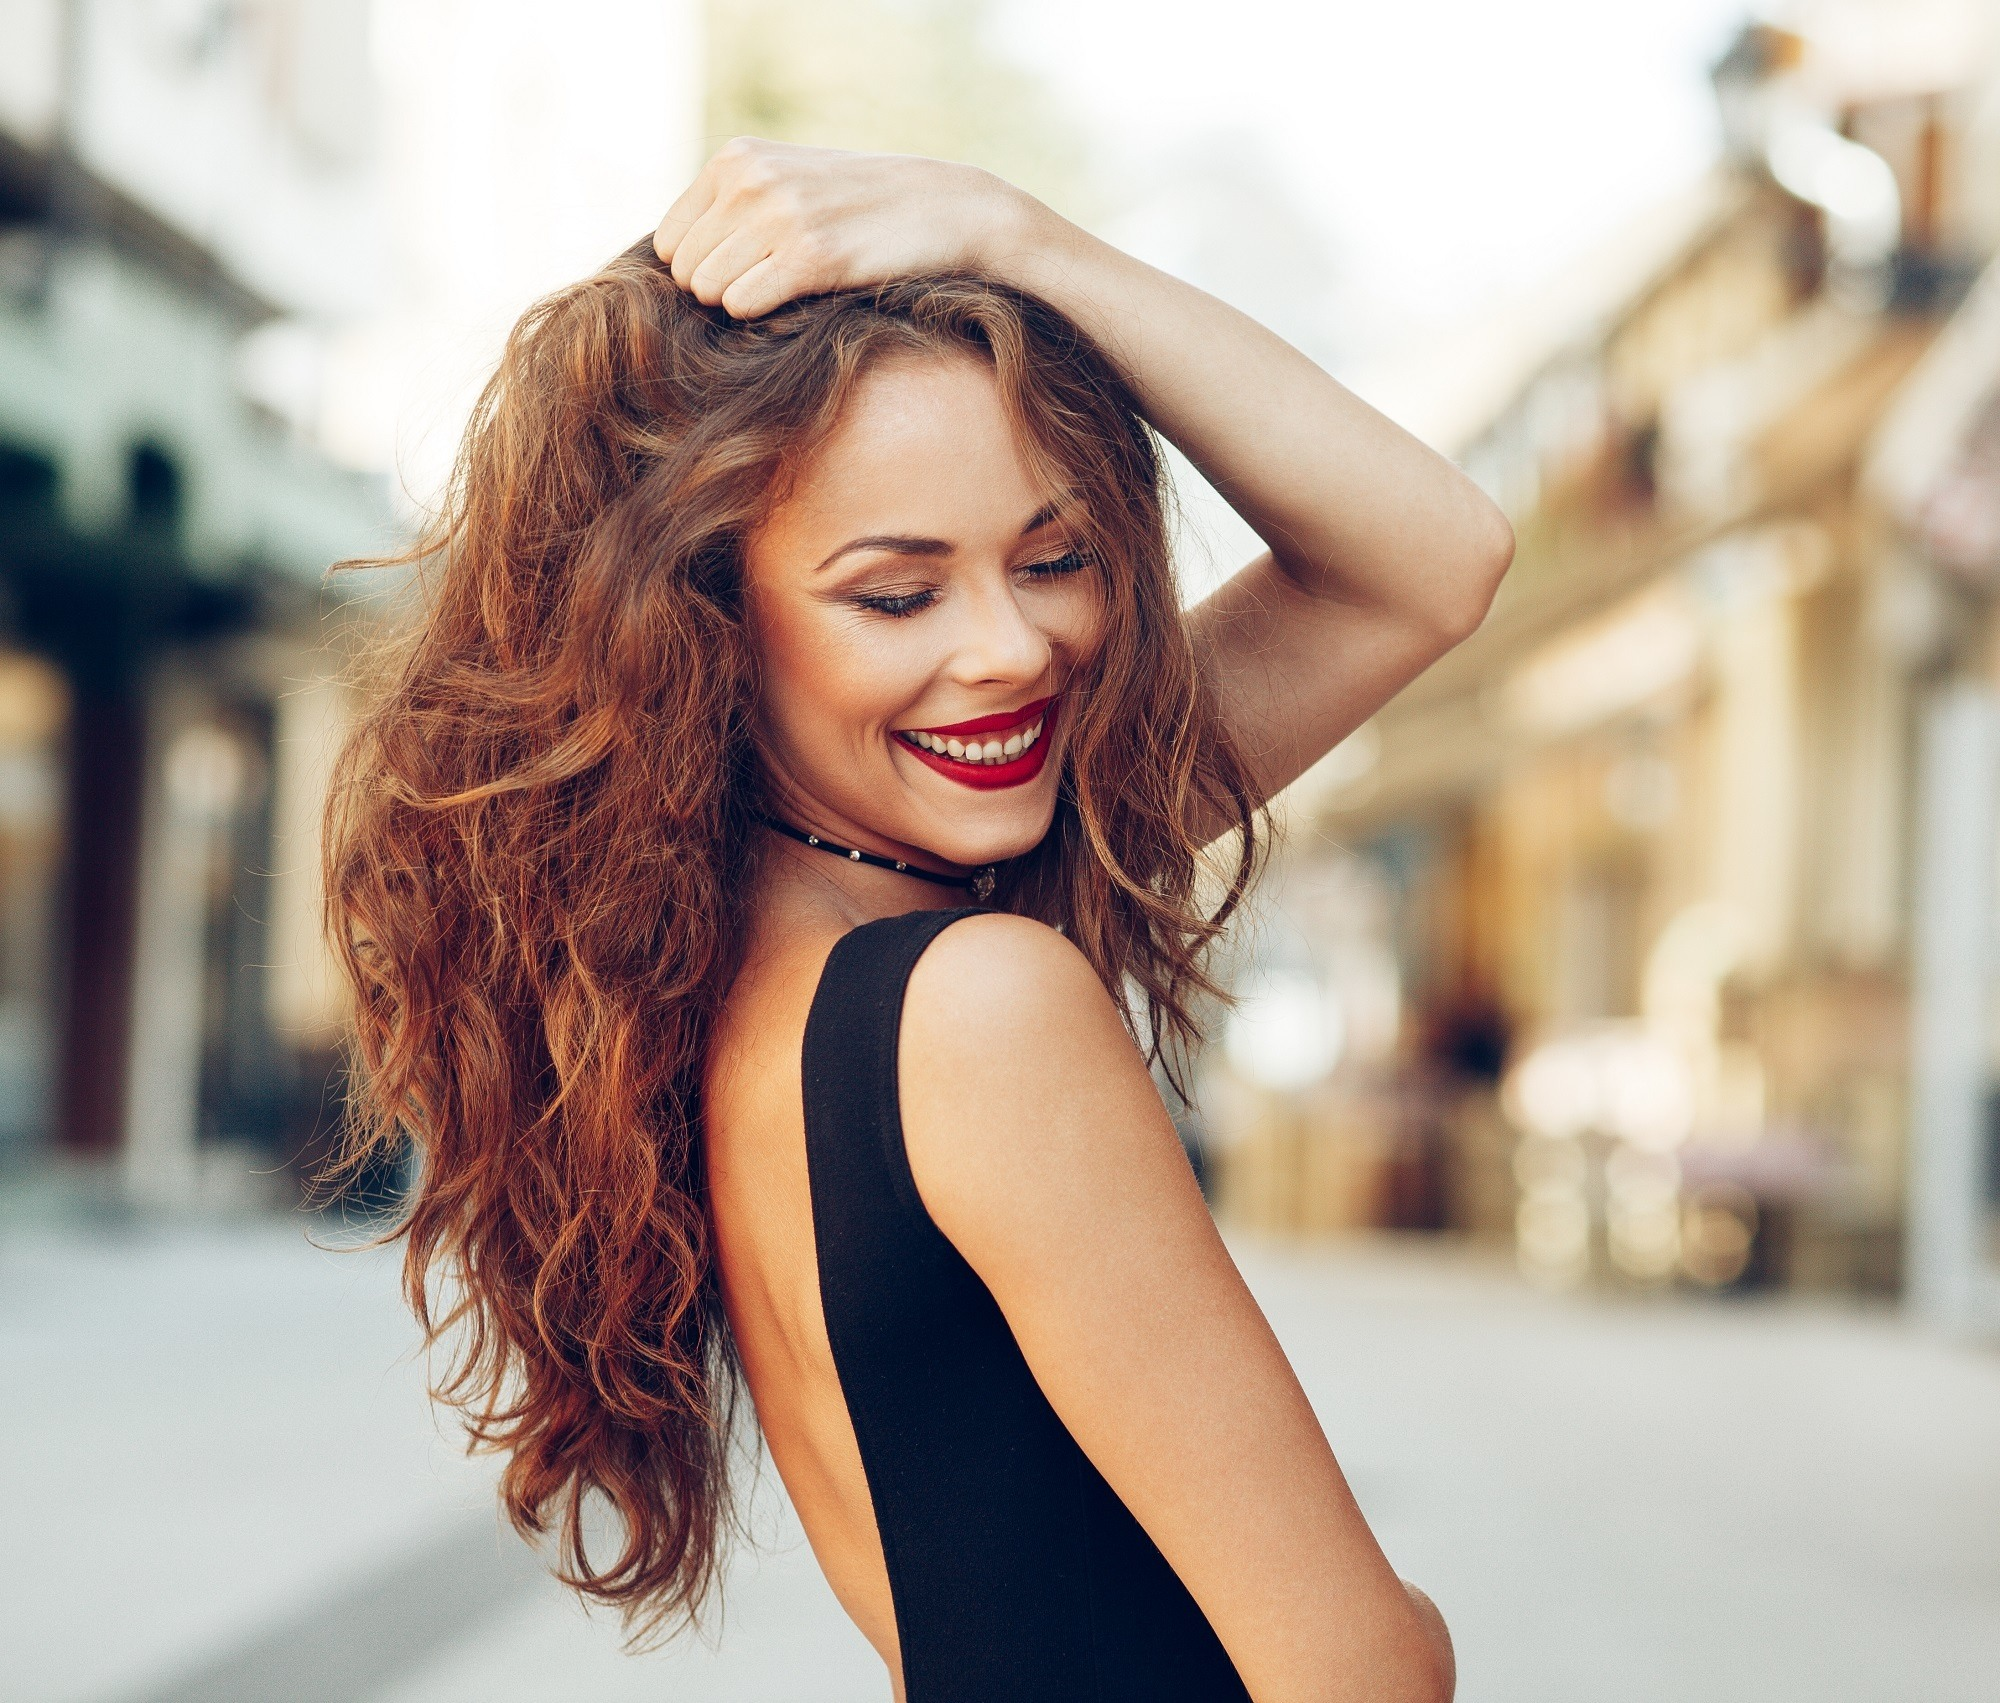 Hair color for curly hair: Woman with long brown curly hair wearing a black sleeveless top outdoors